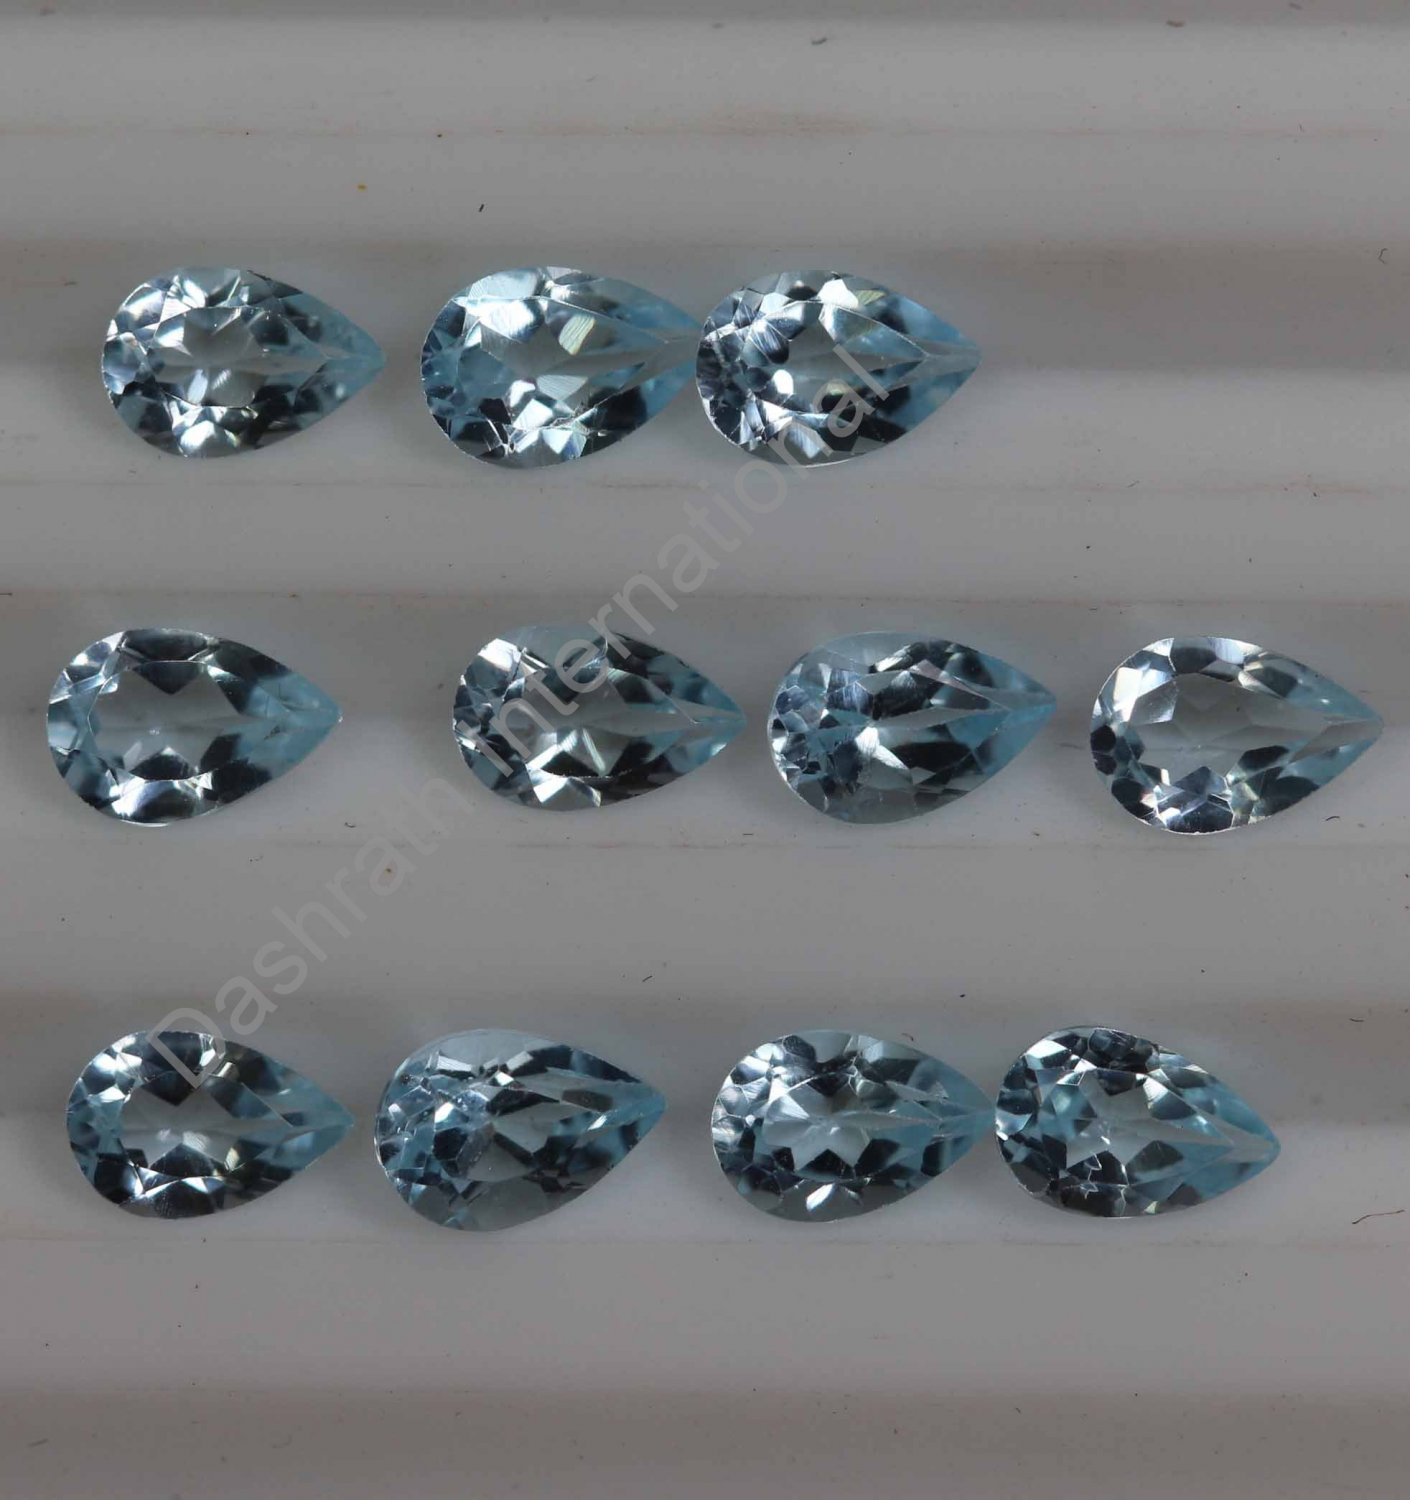 7x5mm Natural Sky Blue Topaz Faceted Cut Pear 1 Piece  Top Quality Loose Gemstone